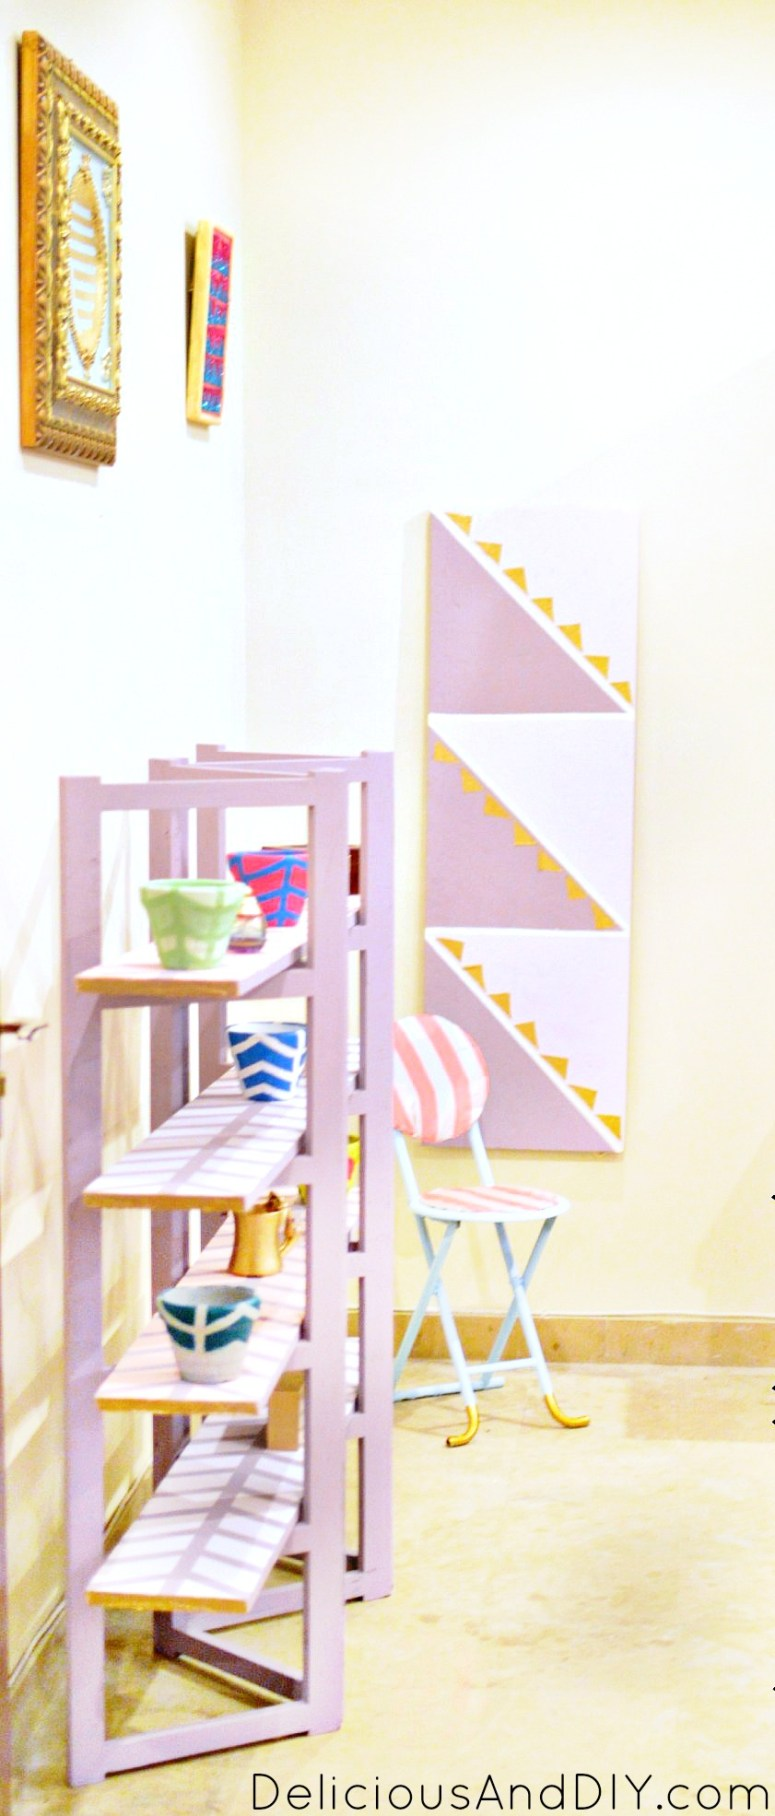 A colorful room that is a complete Do It Yourself from start to finish| Colorful Room perfect for a kids room| Home Decor| Before and After Room Reveals| Painted Wall| Accent Wall Ideas| Room Makeover Ideas| Tribal Art| Handpainted Room Decor